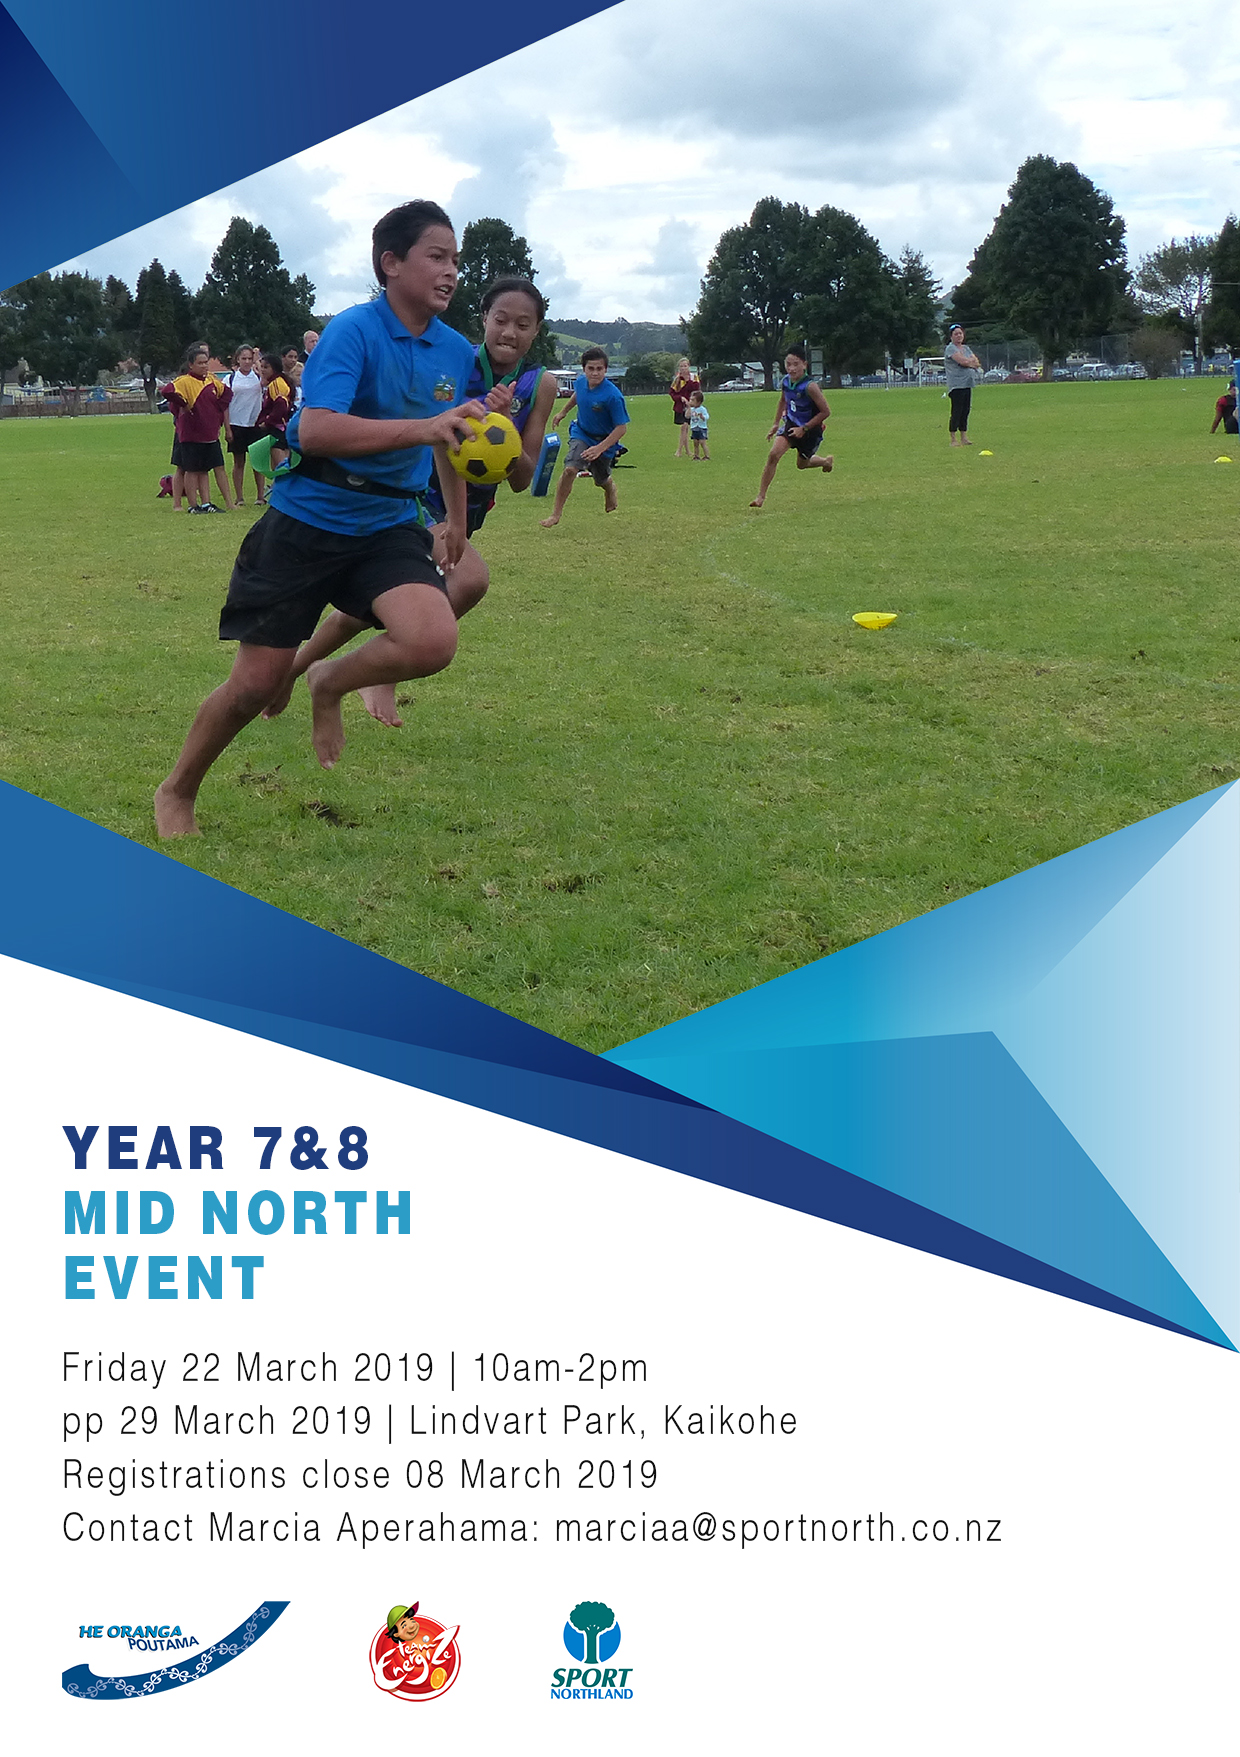 2019 Sport Northland Mid North Year 7 & 8 Ki o Rahi Tournament